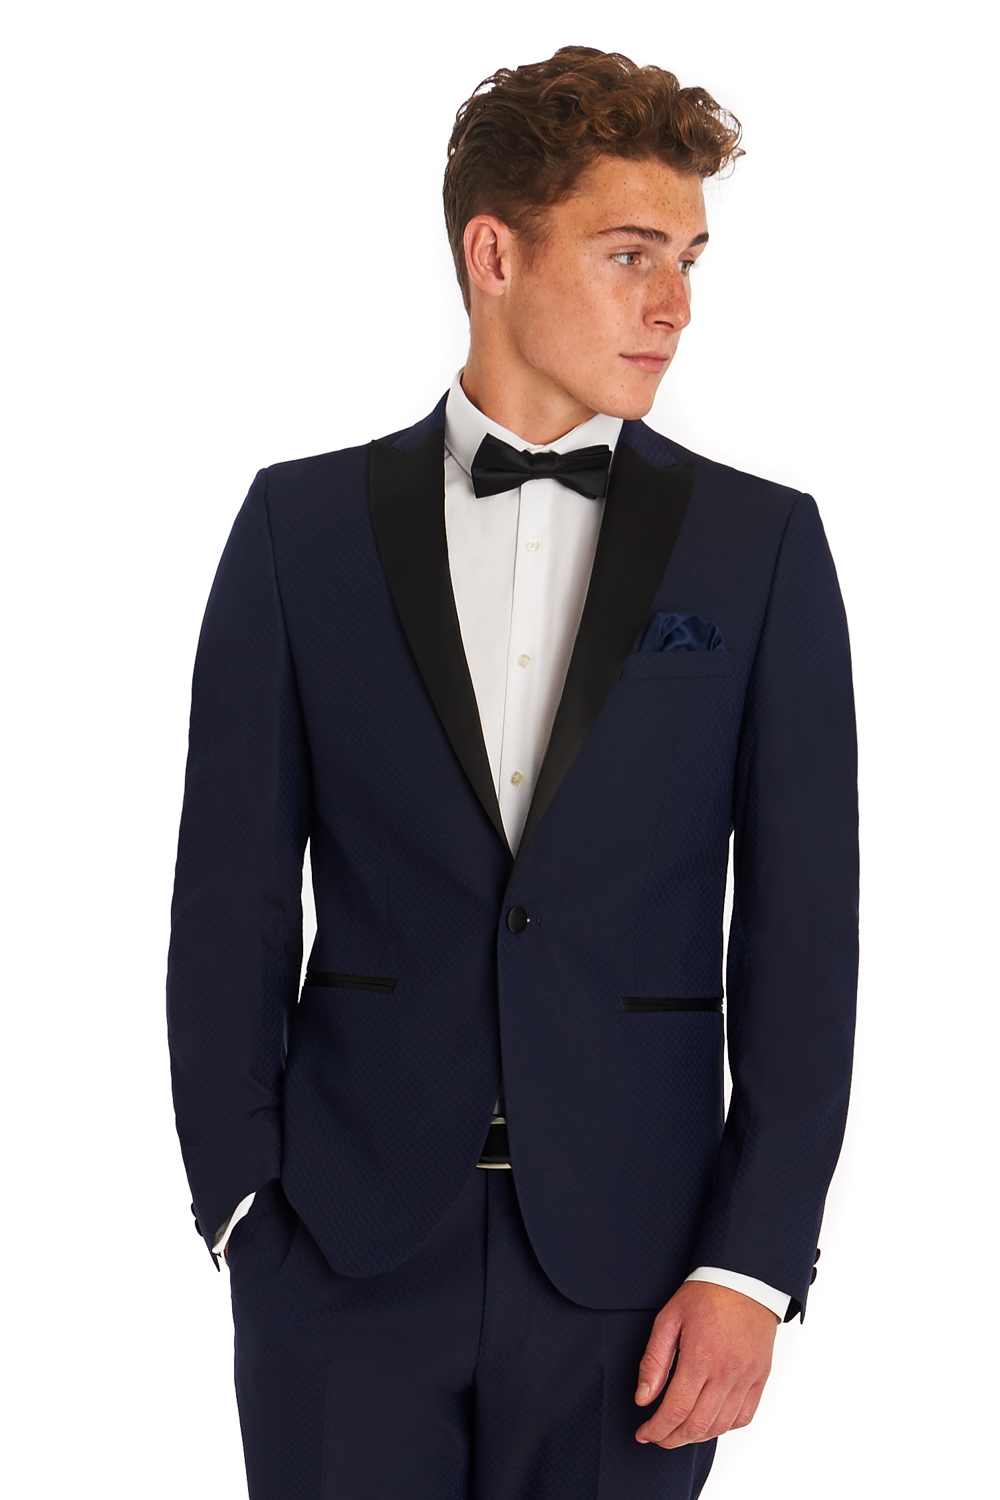 Popular Mens Satin Suit-Buy Cheap Mens Satin Suit lots from China